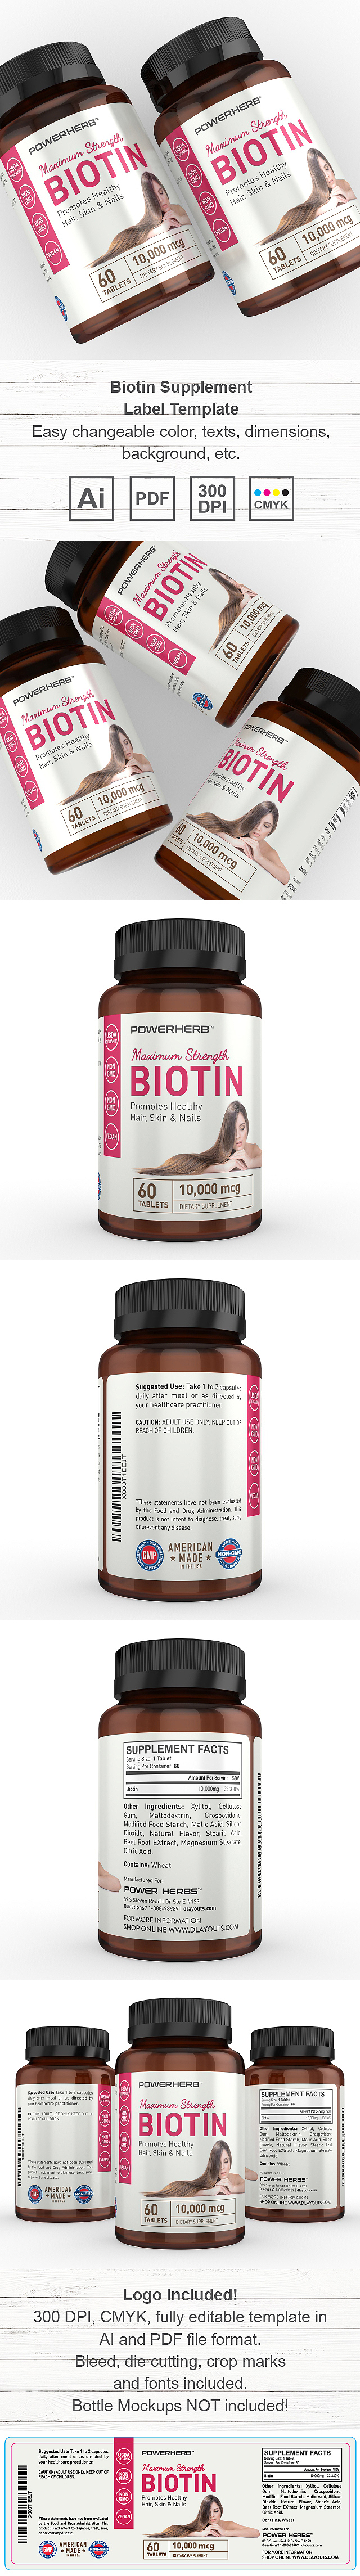 Biotin Supplement Label Template